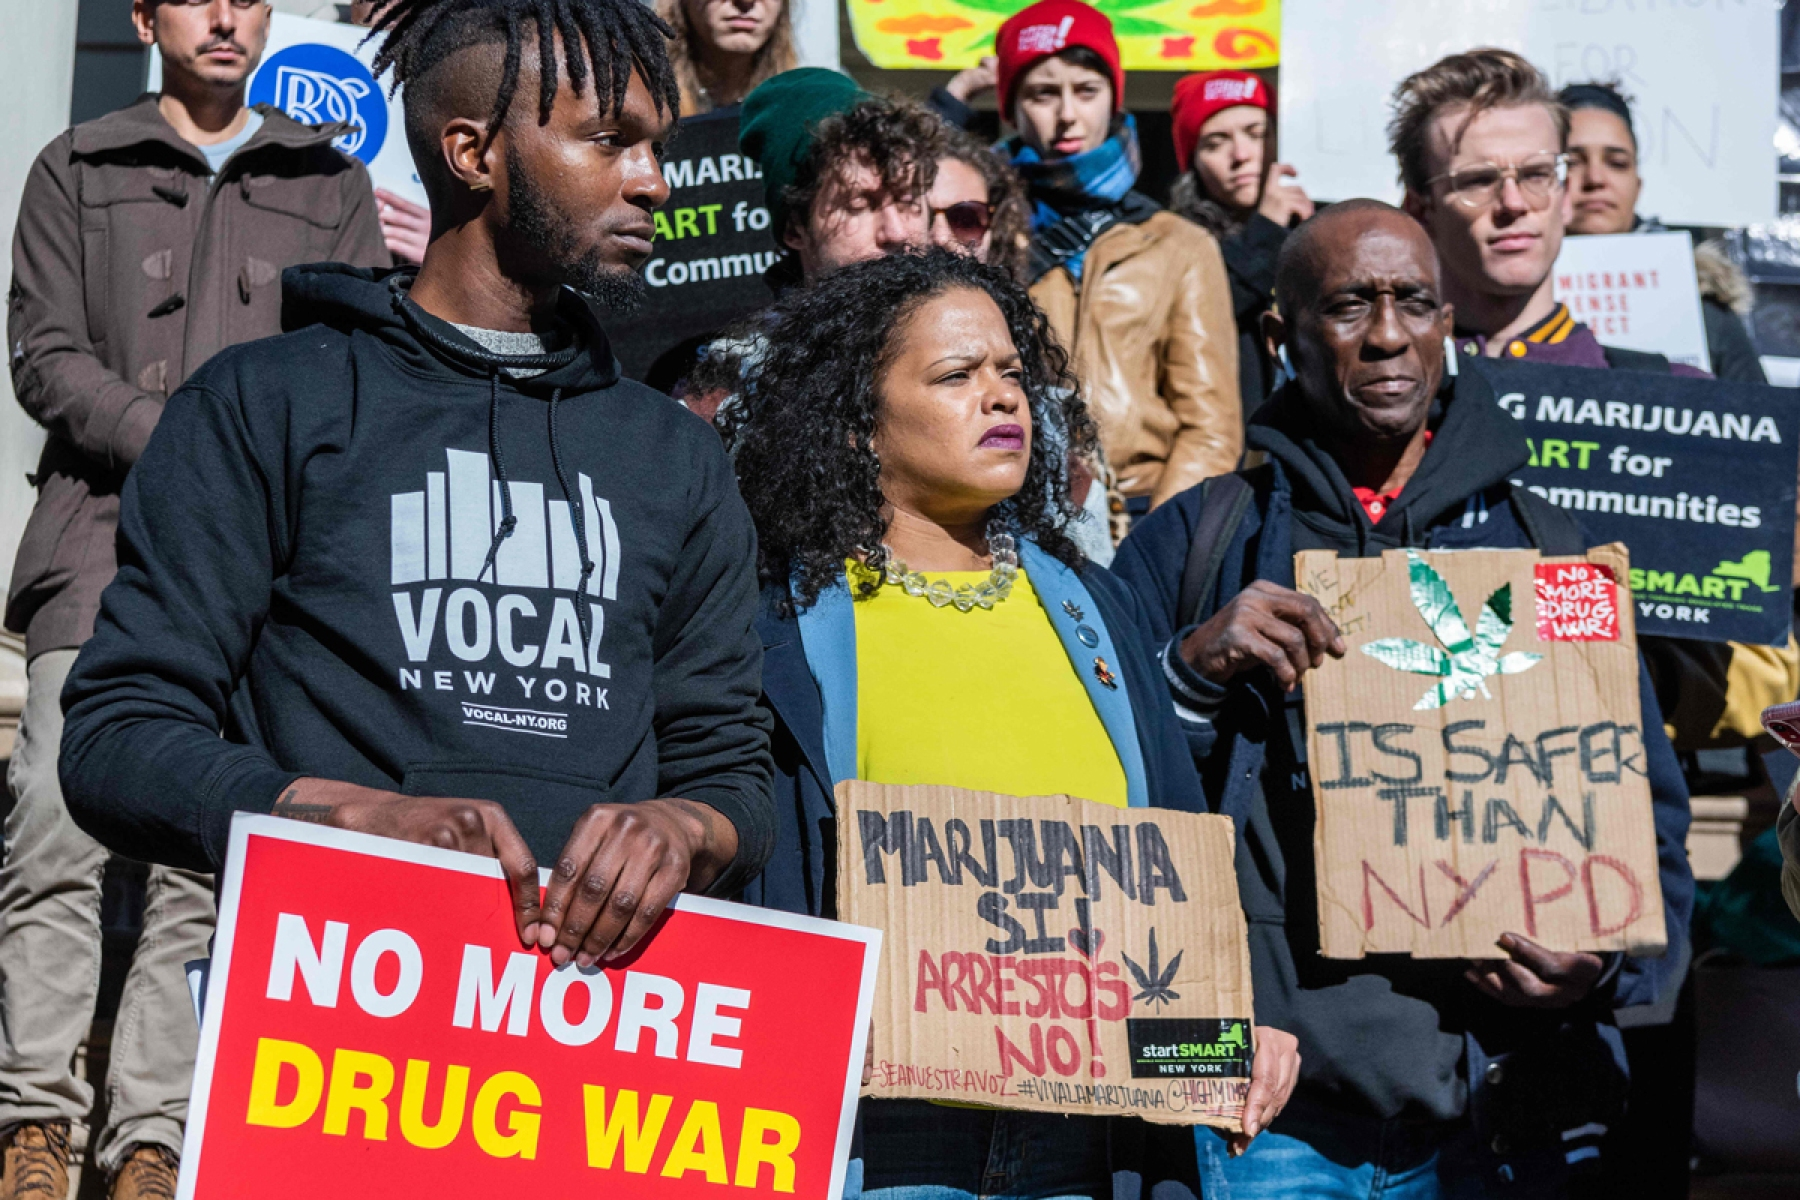 Supporters of the Marijuana Regulation and Taxation Act (MRTA) rally on the steps of New York City Hall on November 21, 2019. The law would legalize and regulate the use of marijuana in New York State, ending disproportionate policing and providing millions of dollars in tax revenue.